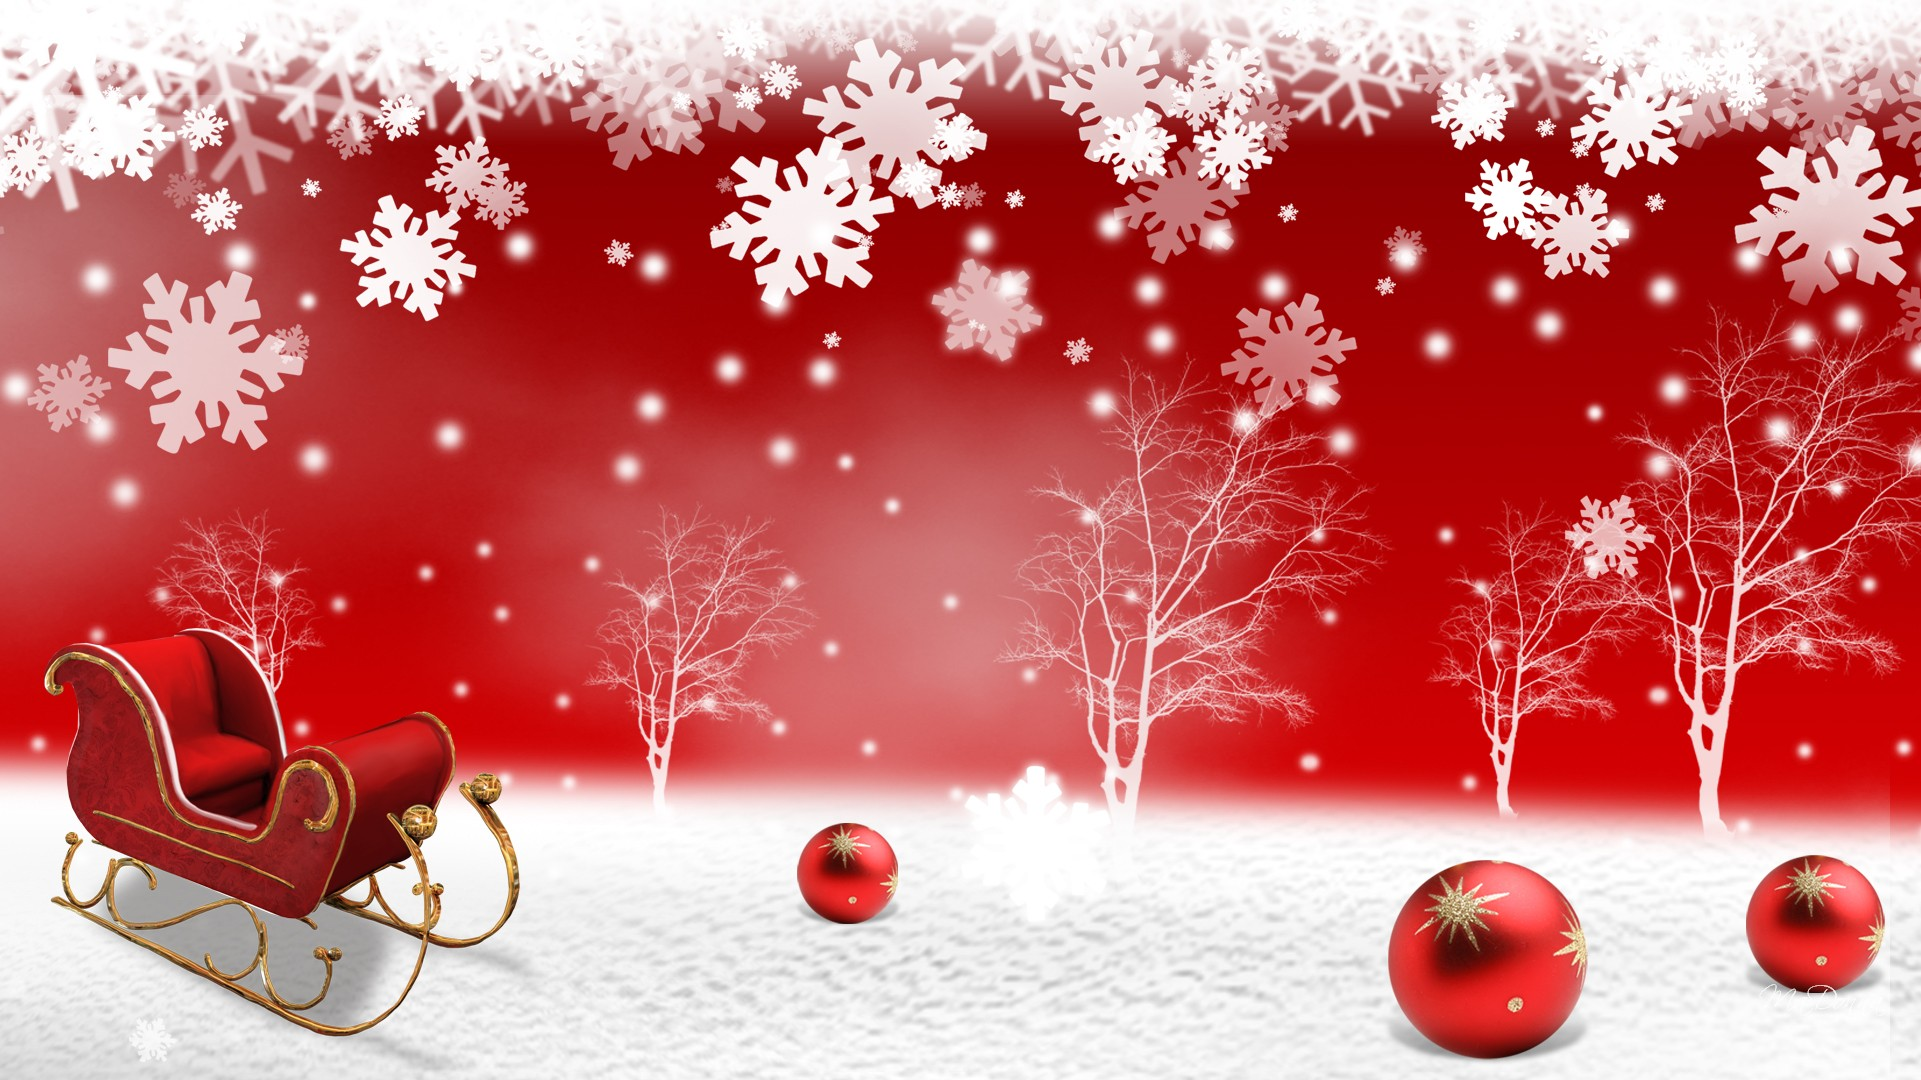 Days of christmas yule tide greetings to all